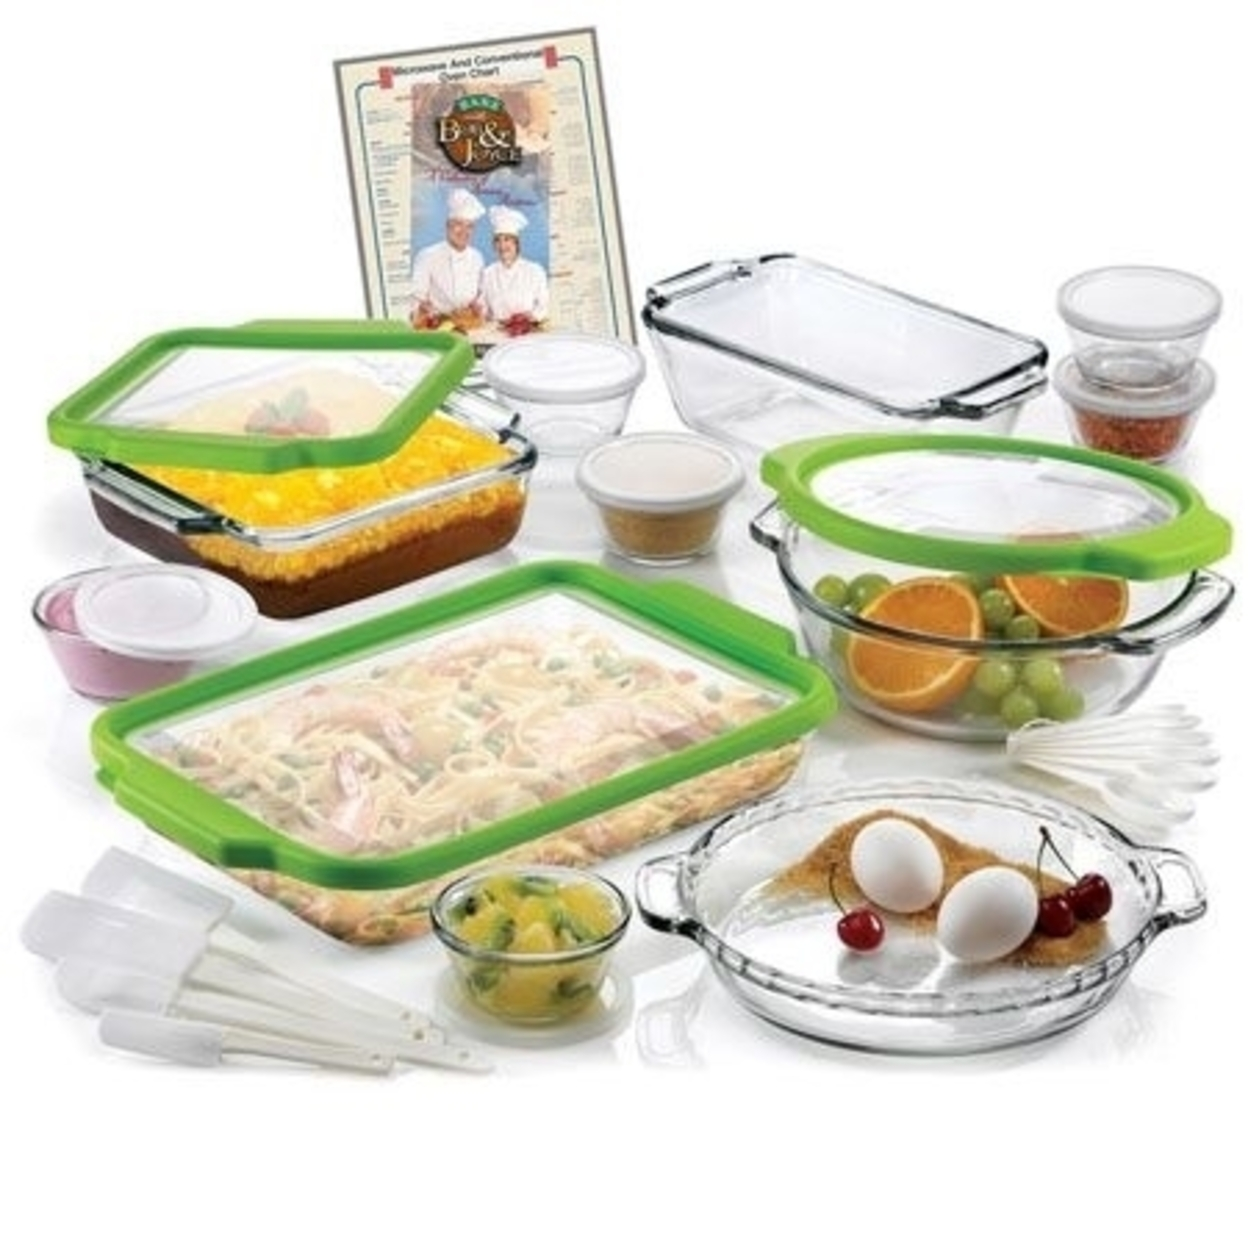 Anchor Hocking Ah32Tf 32 Pc Ovenware Set w TrueFit See-Thru Lids 596d4d092a00e43d260e9286